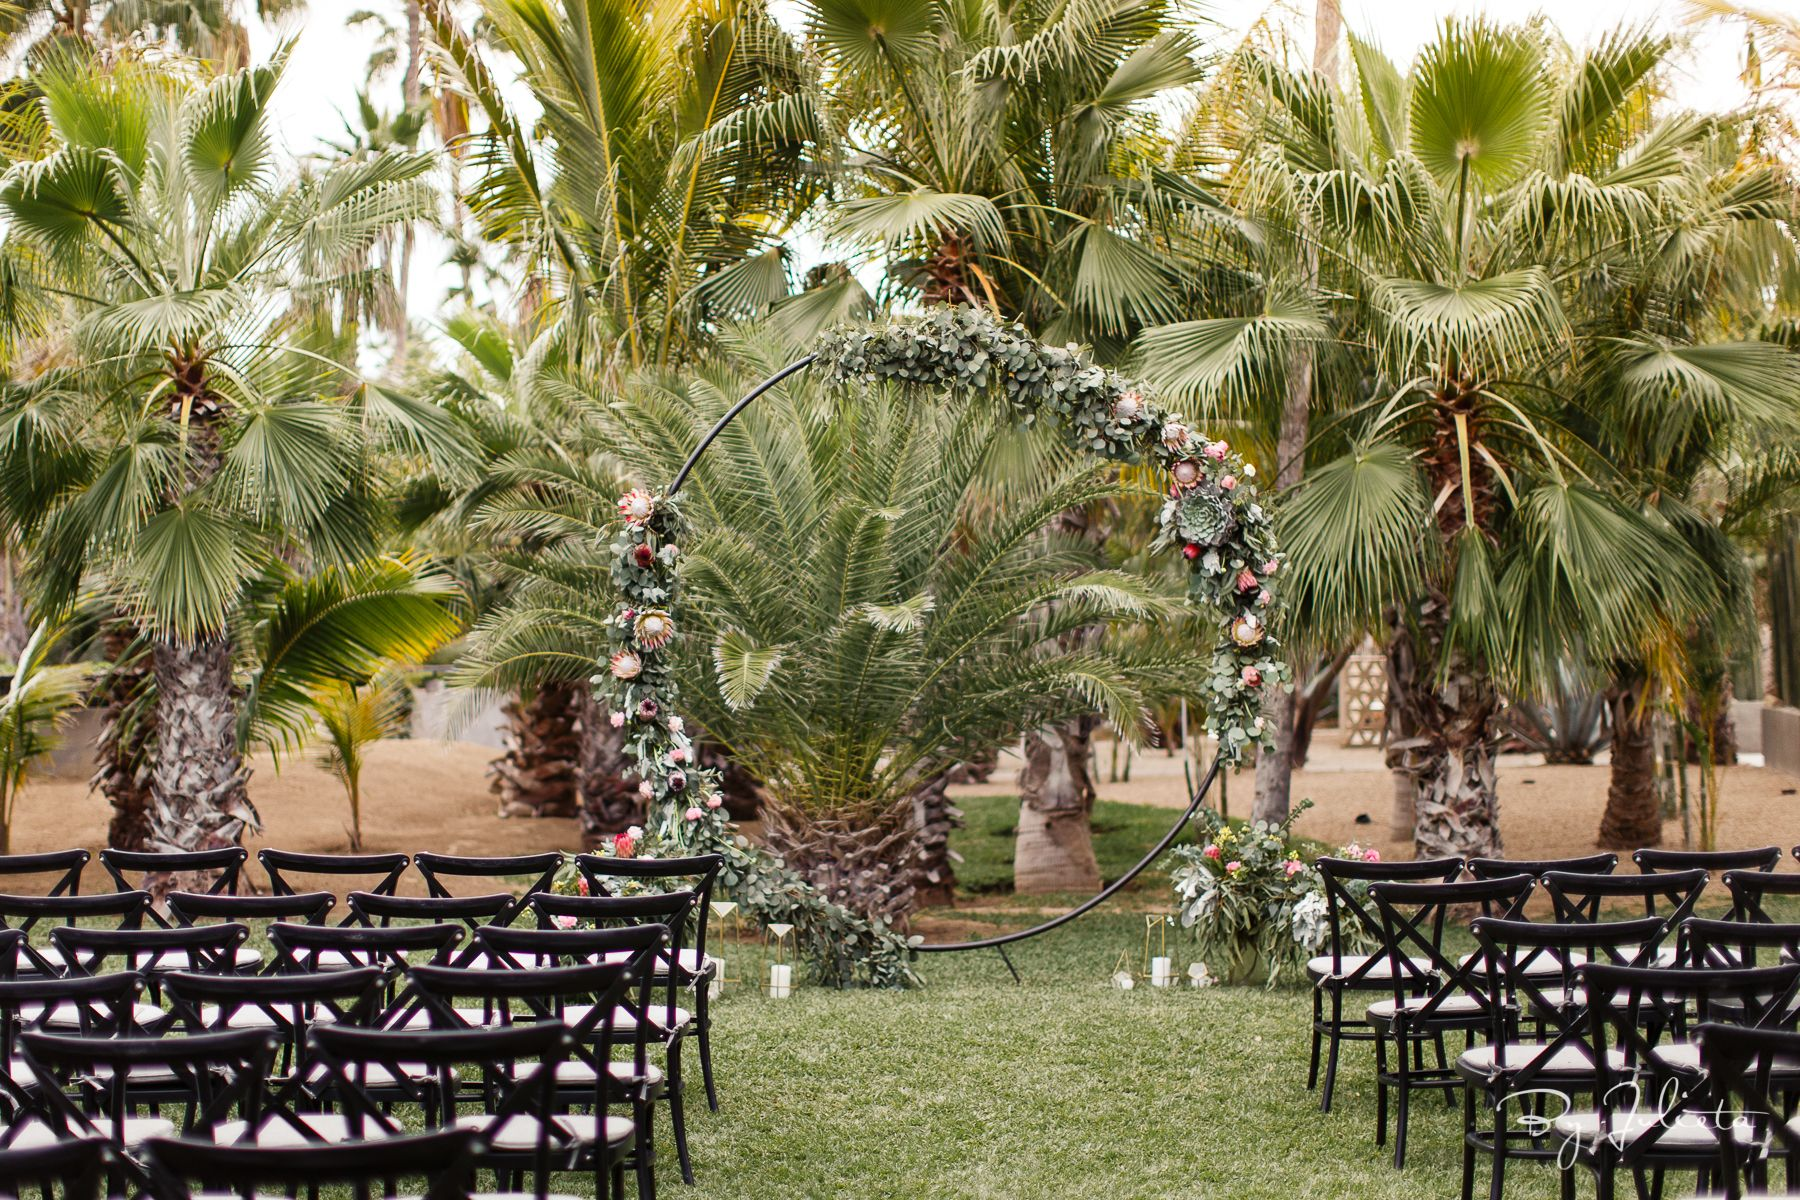 Ceremony Design by Jesse Wolff at Acre Baja by Cabo Wedding Services